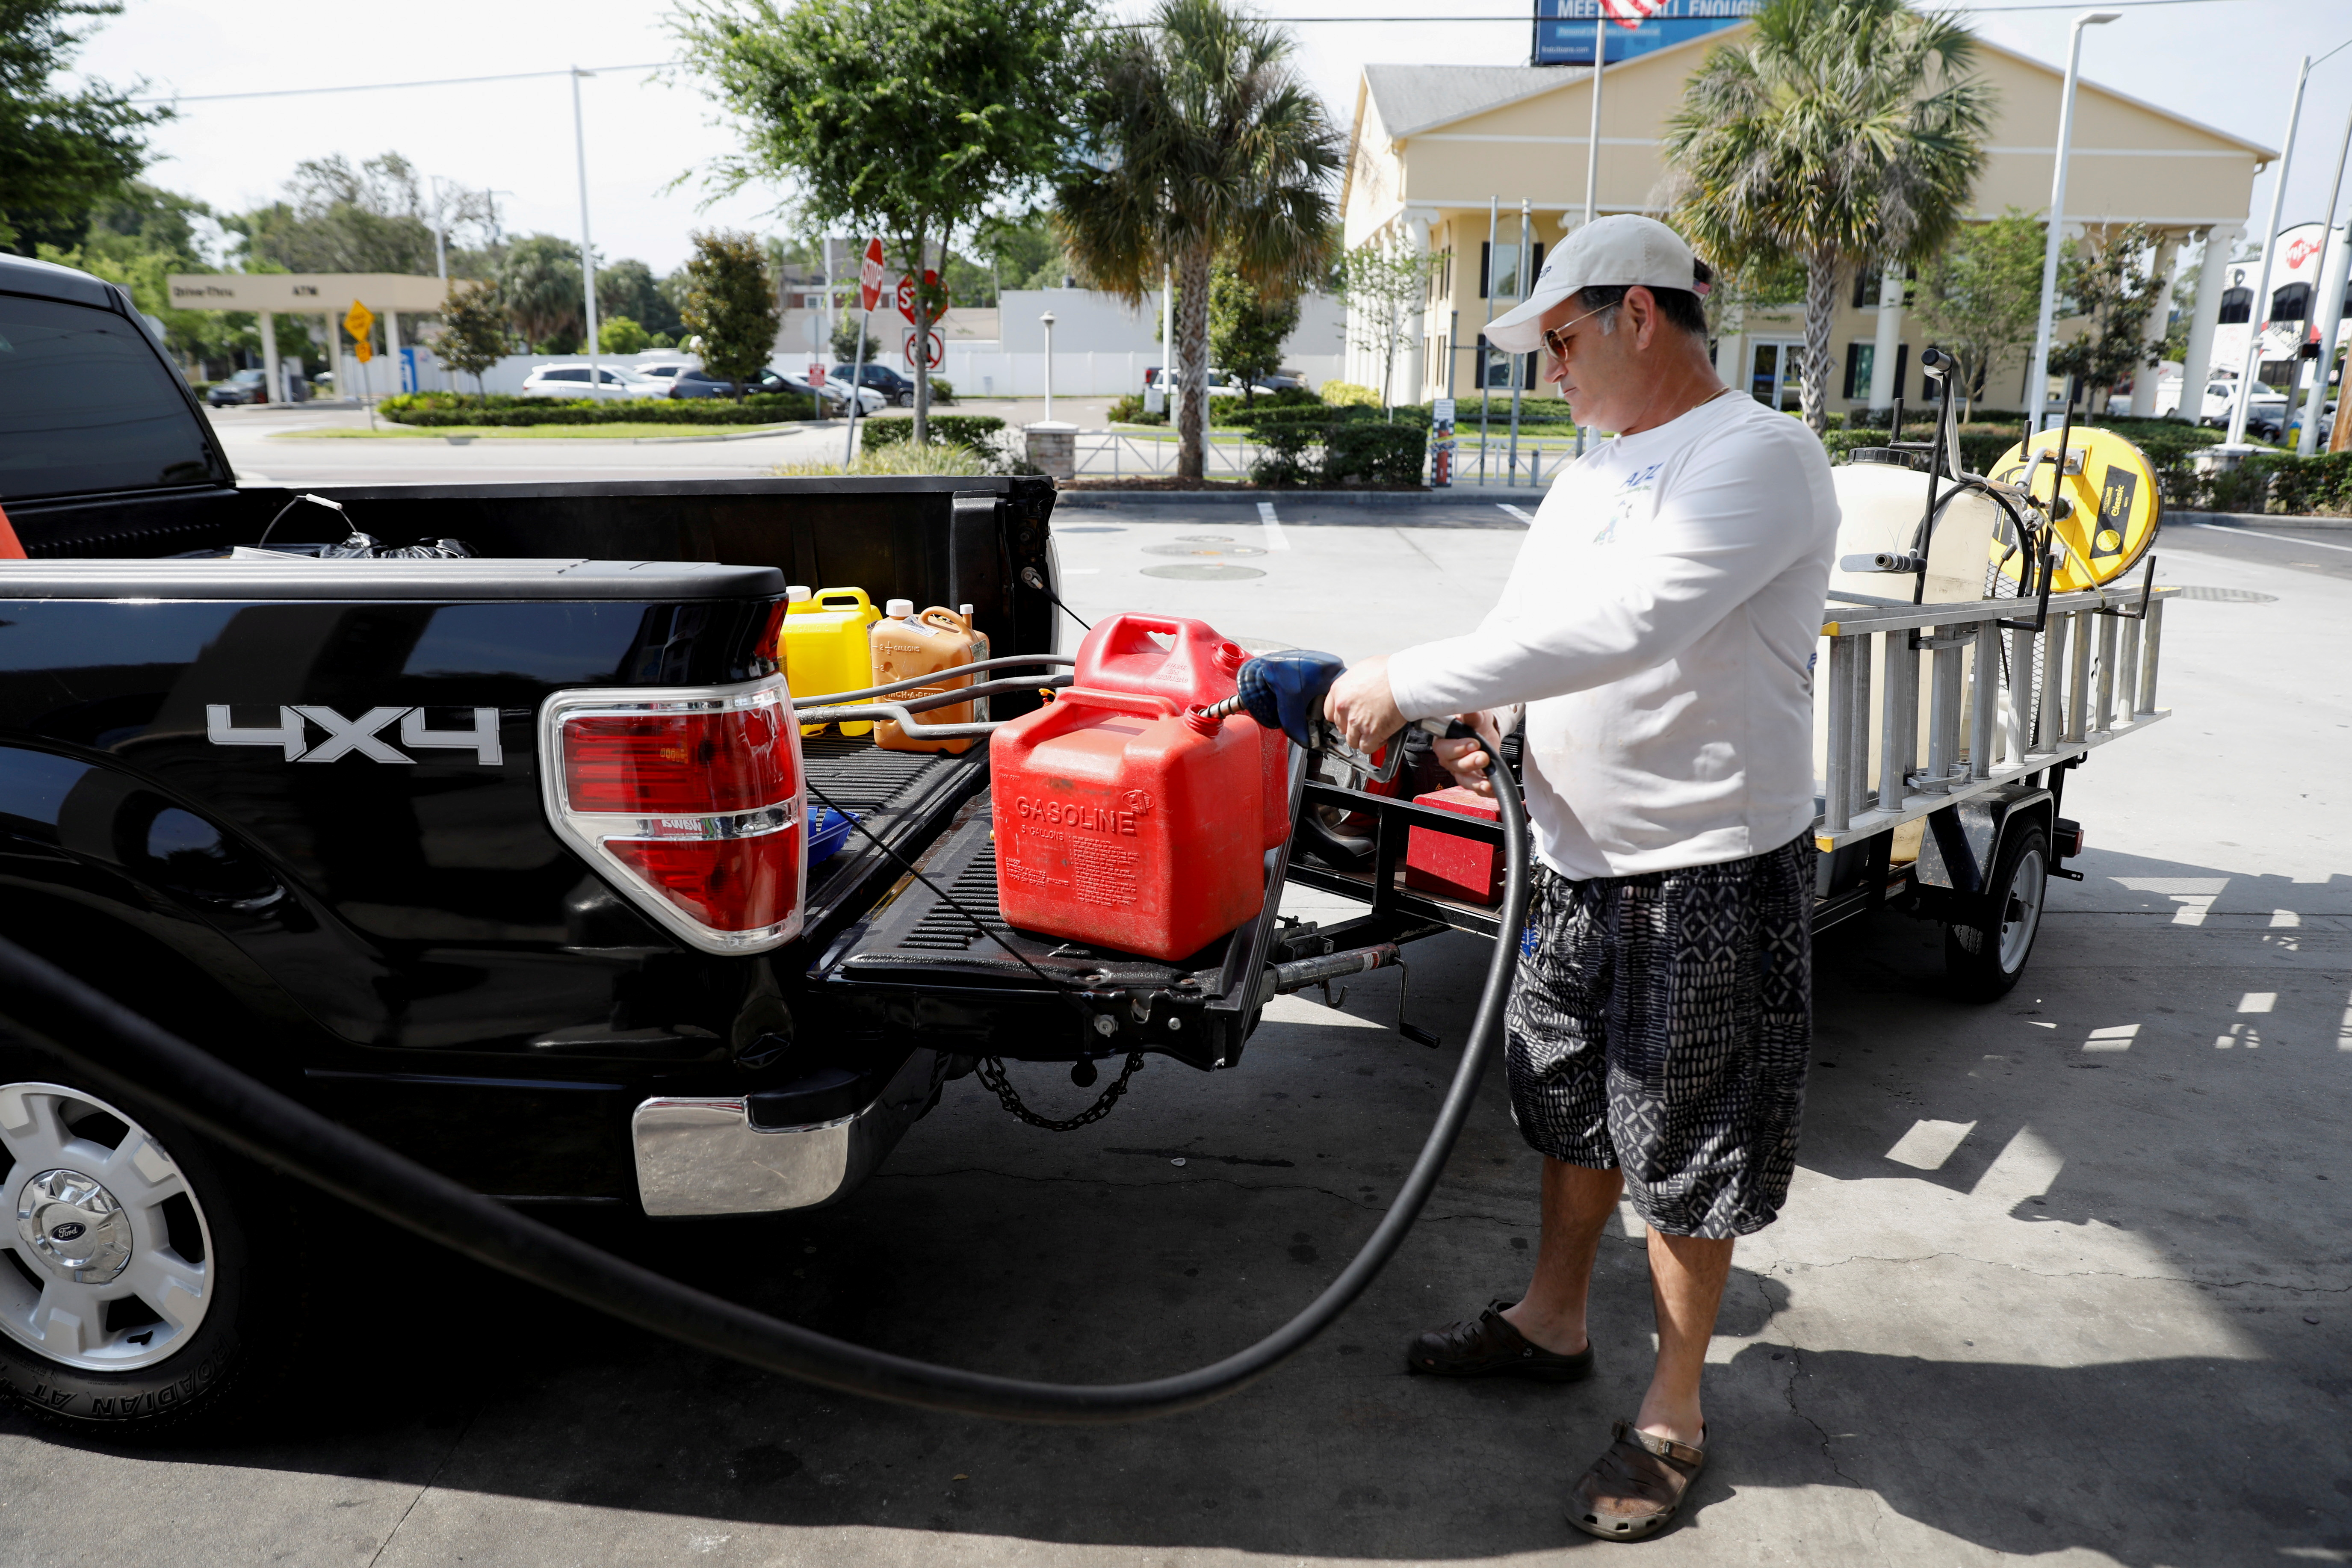 Dax Valenti fills up gas tanks at a gas station after a cyberattack crippled the biggest fuel pipeline in the country, run by Colonial Pipeline, in Tampa, Florida, U.S., May 12, 2021. REUTERS/Octavio Jones/File Photo